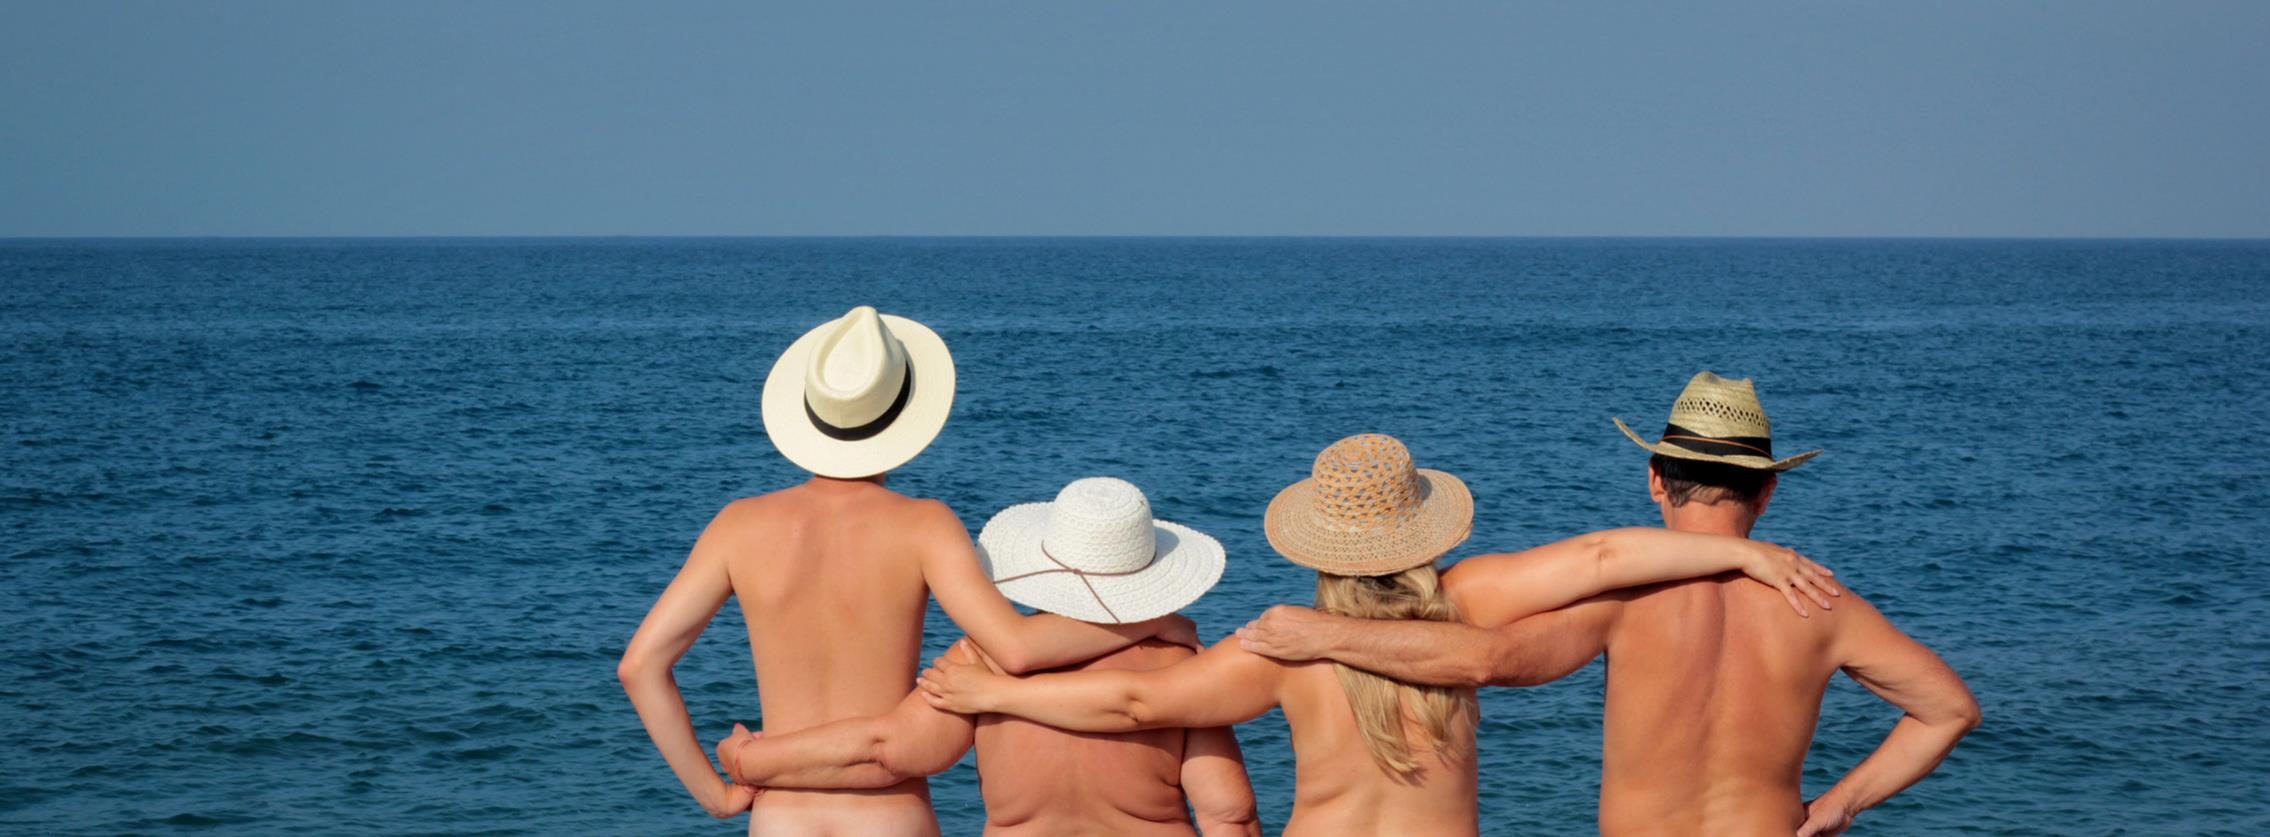 Nudist Beach In Spain